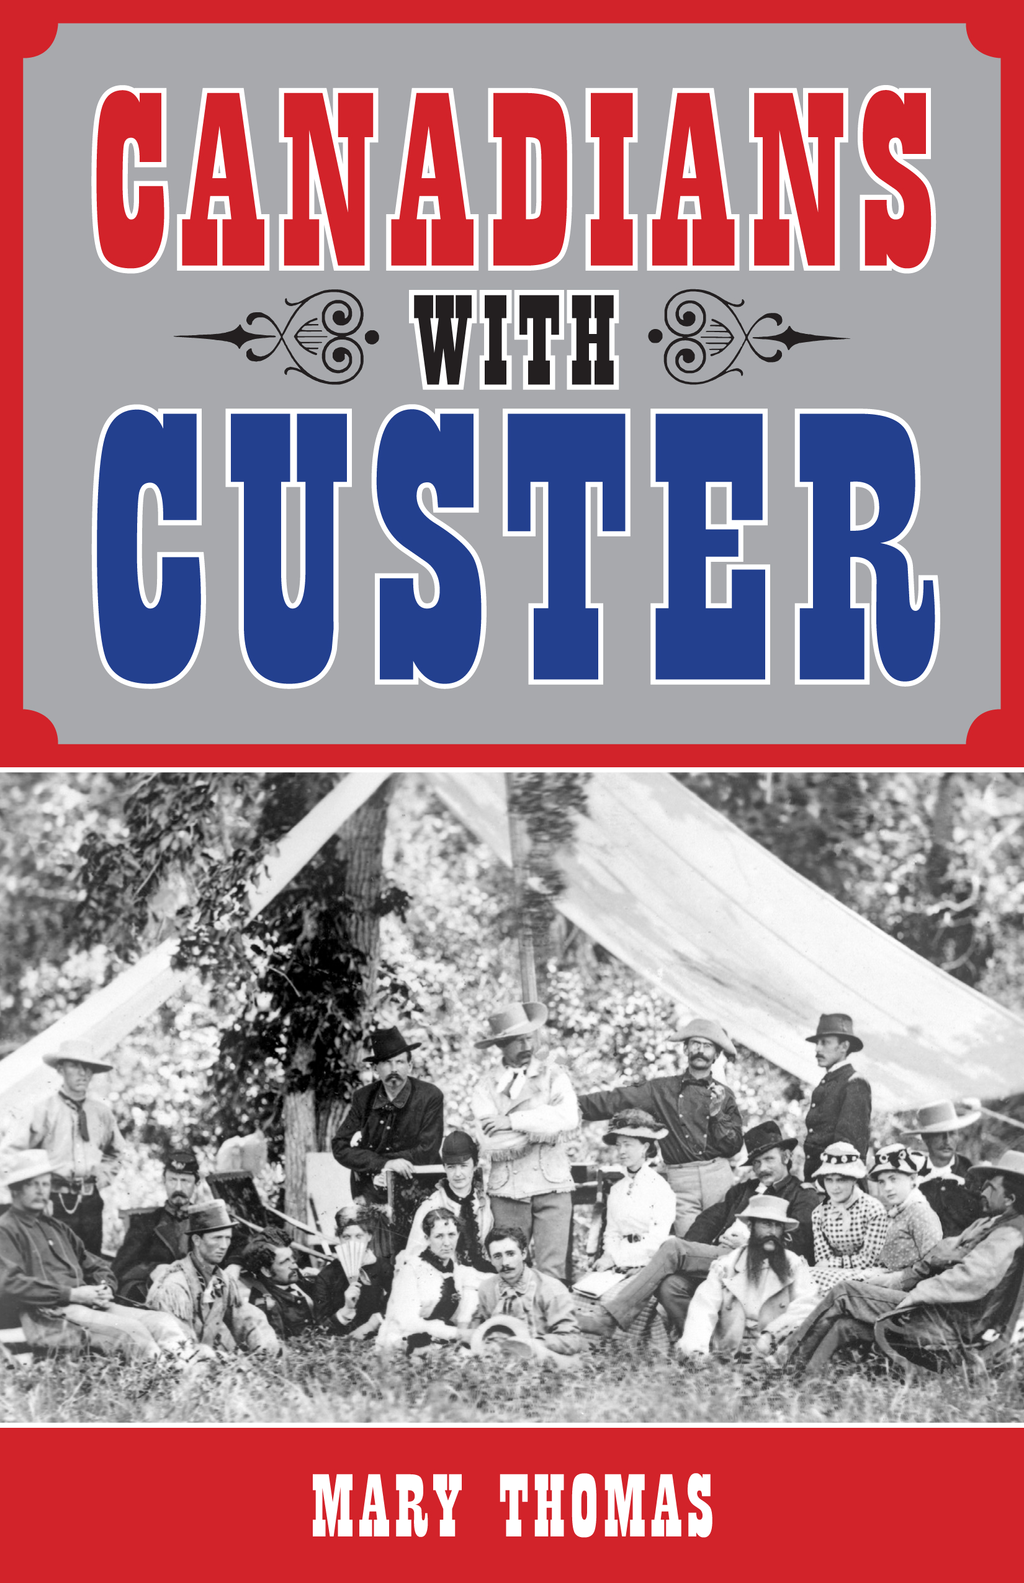 Canadians with Custer